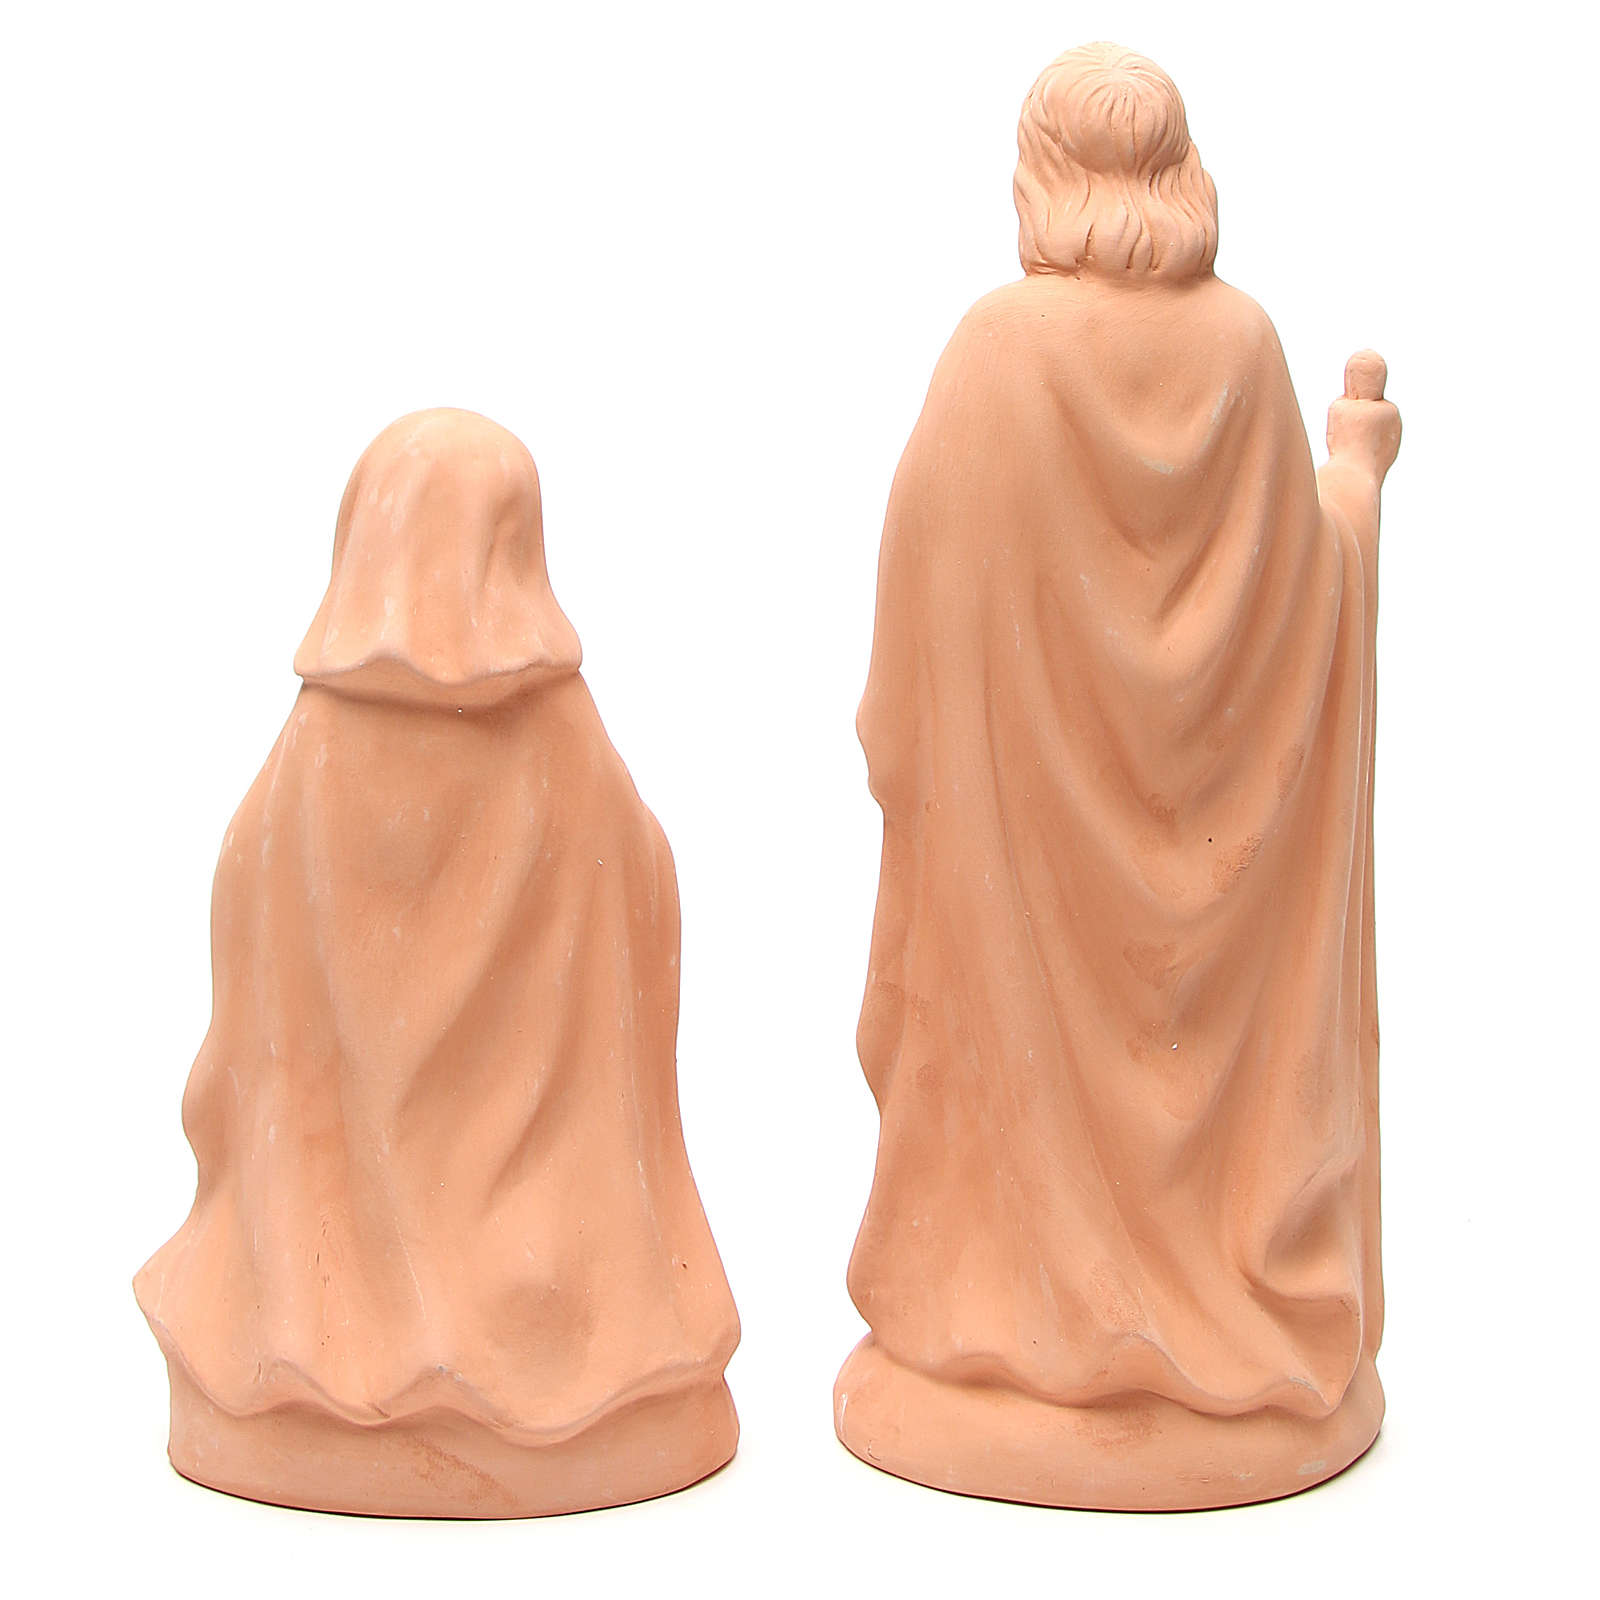 Natività in terracotta 40 cm - 5 pz 4